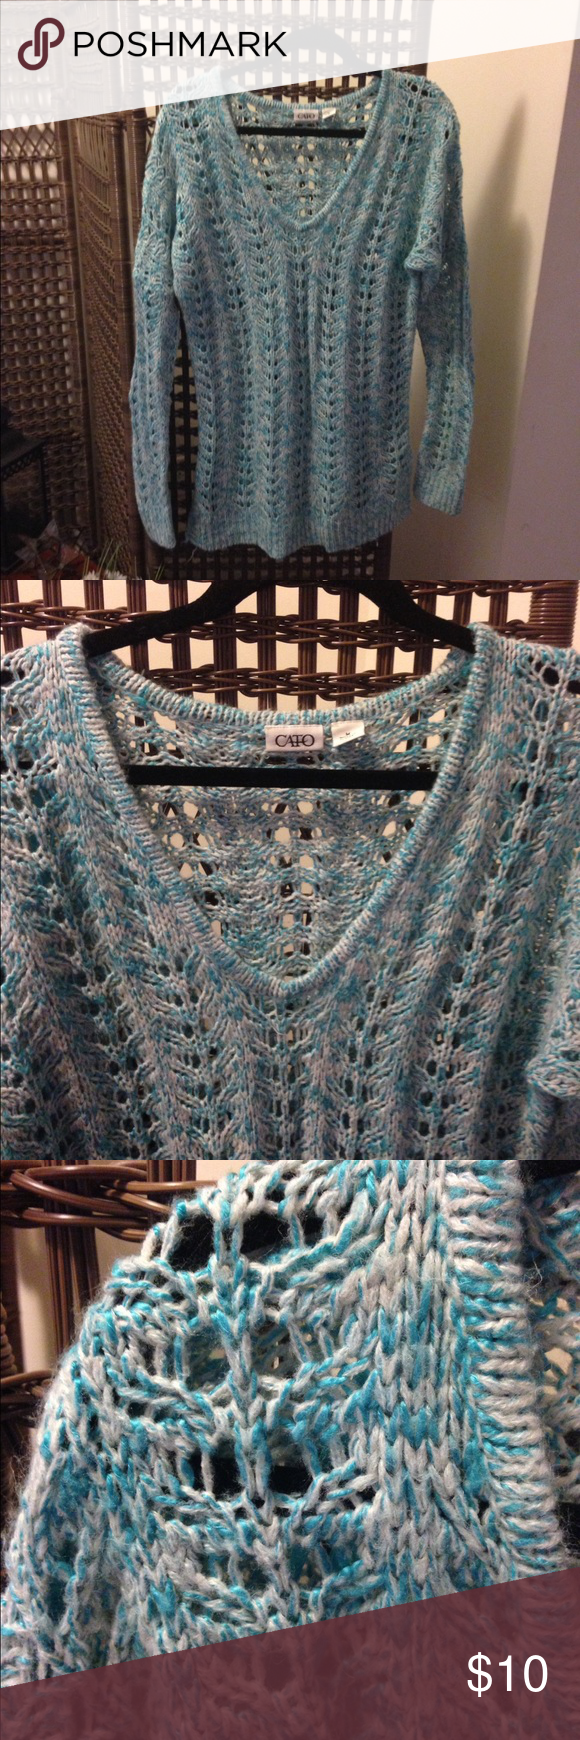 Teal & Ivory Open Weave Sweater Teal & Ivory Open Weave Sweater.....gently used....you will need to wear something under it because it does not come with anything. 100% Acrylic Cato Sweaters Crew & Scoop Necks